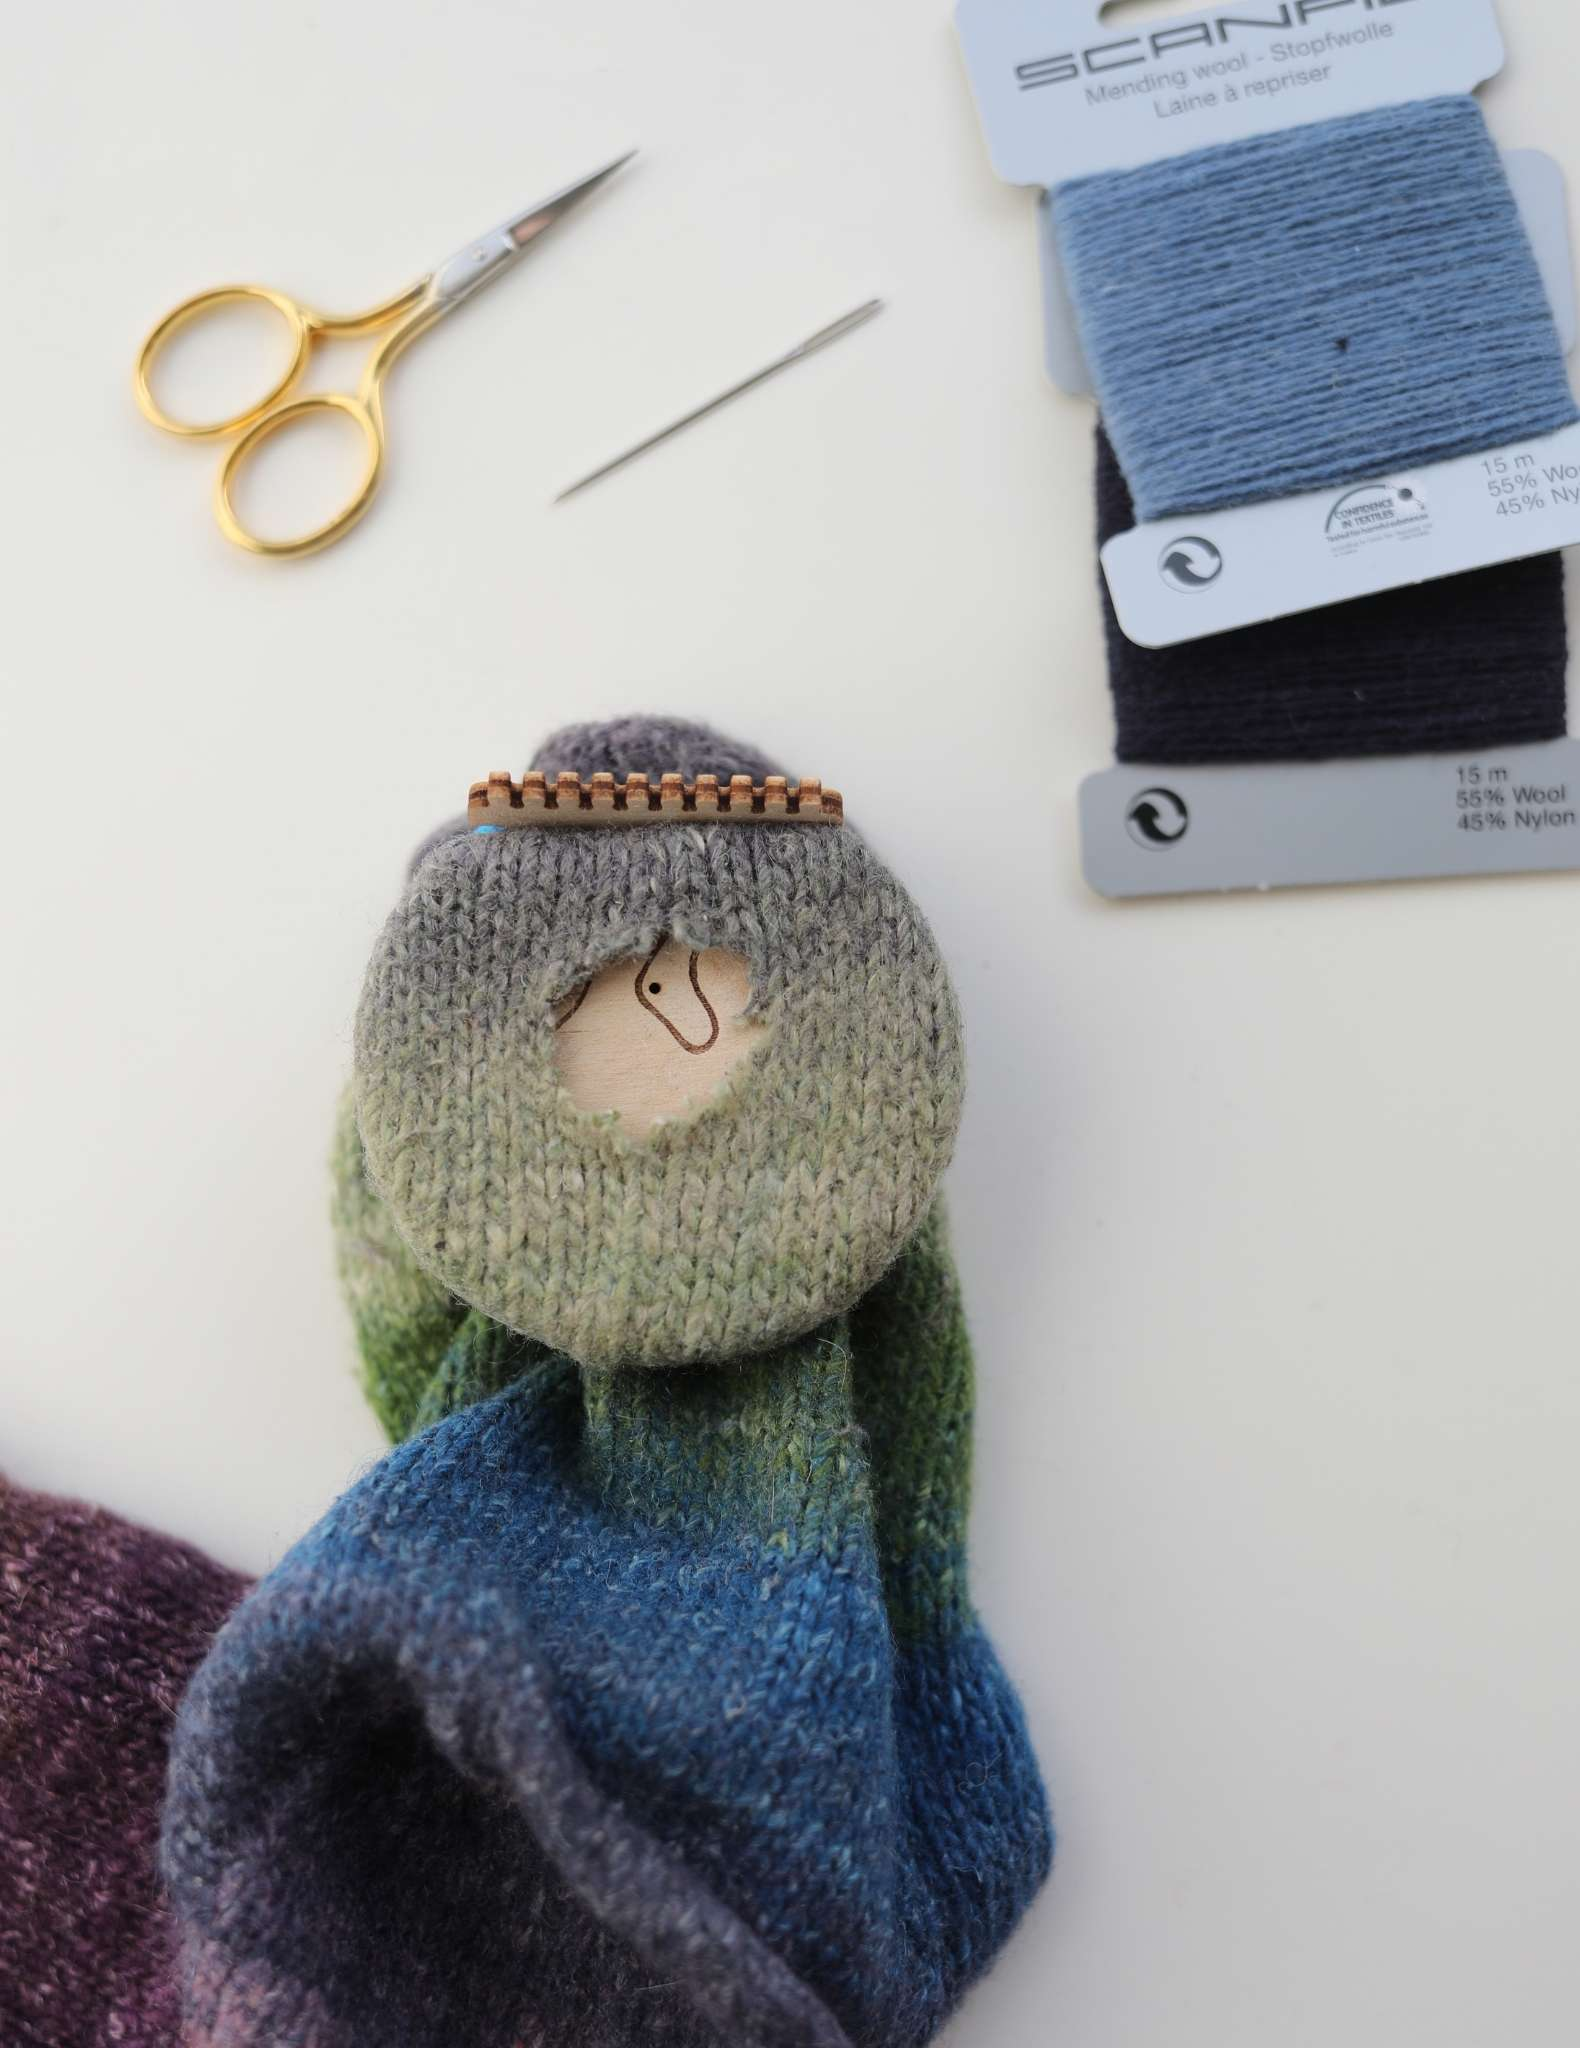 The sock with hole is shown from above, with the darning loom in position inside the sock, the heddle on the outside near the toe and both are being held in position by elastic.